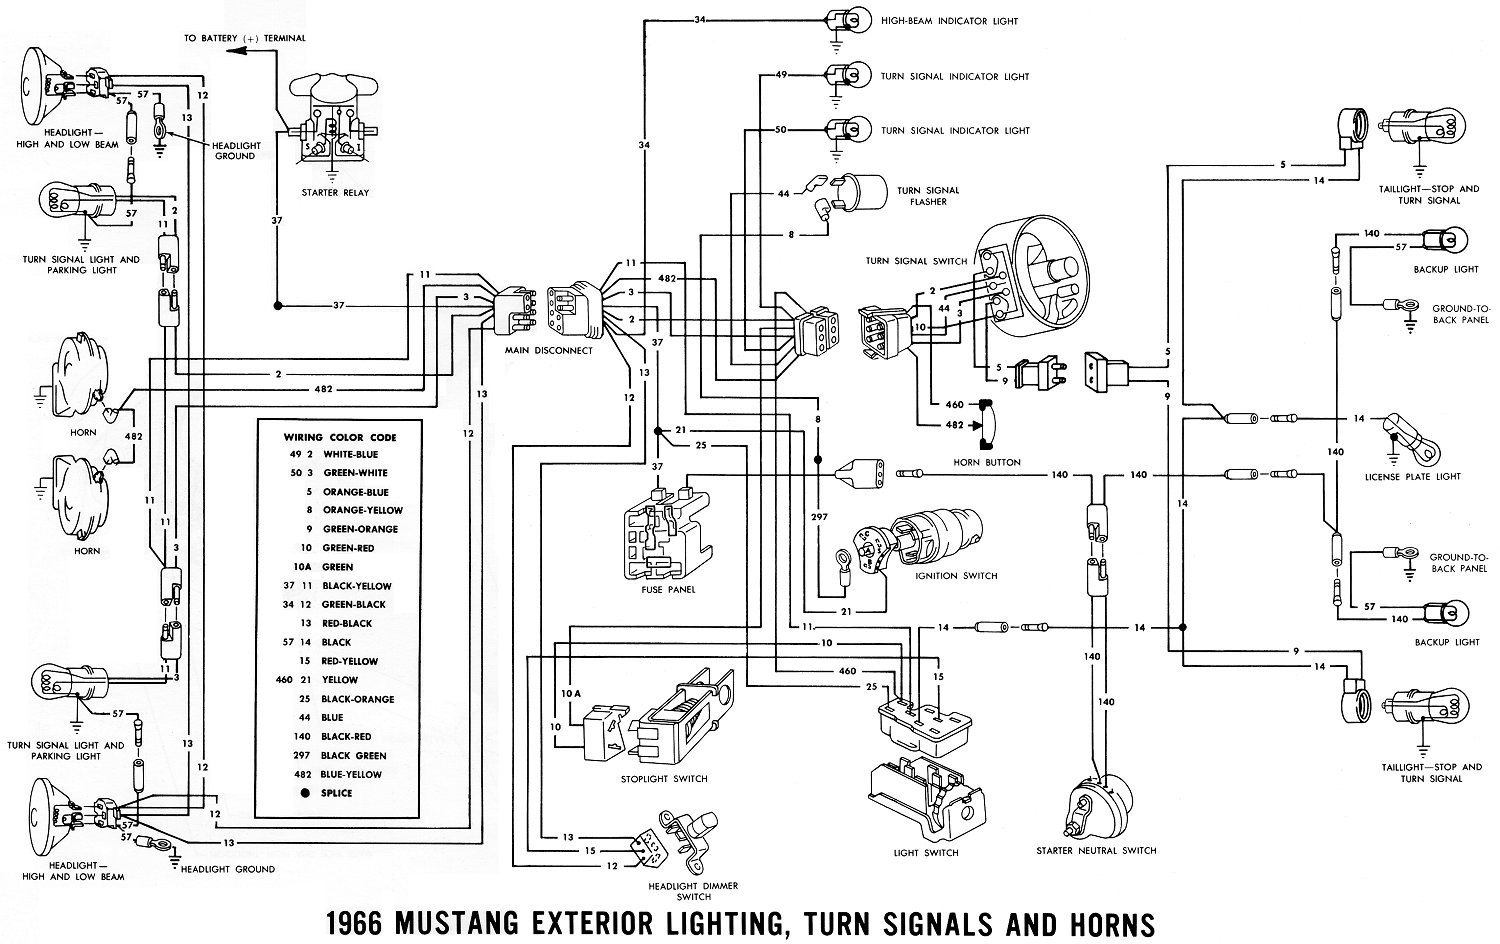 hight resolution of 1967 mustang ignition diagram data schema u2022 rh inboxme co 1967 mustang ignition switch wiring diagram